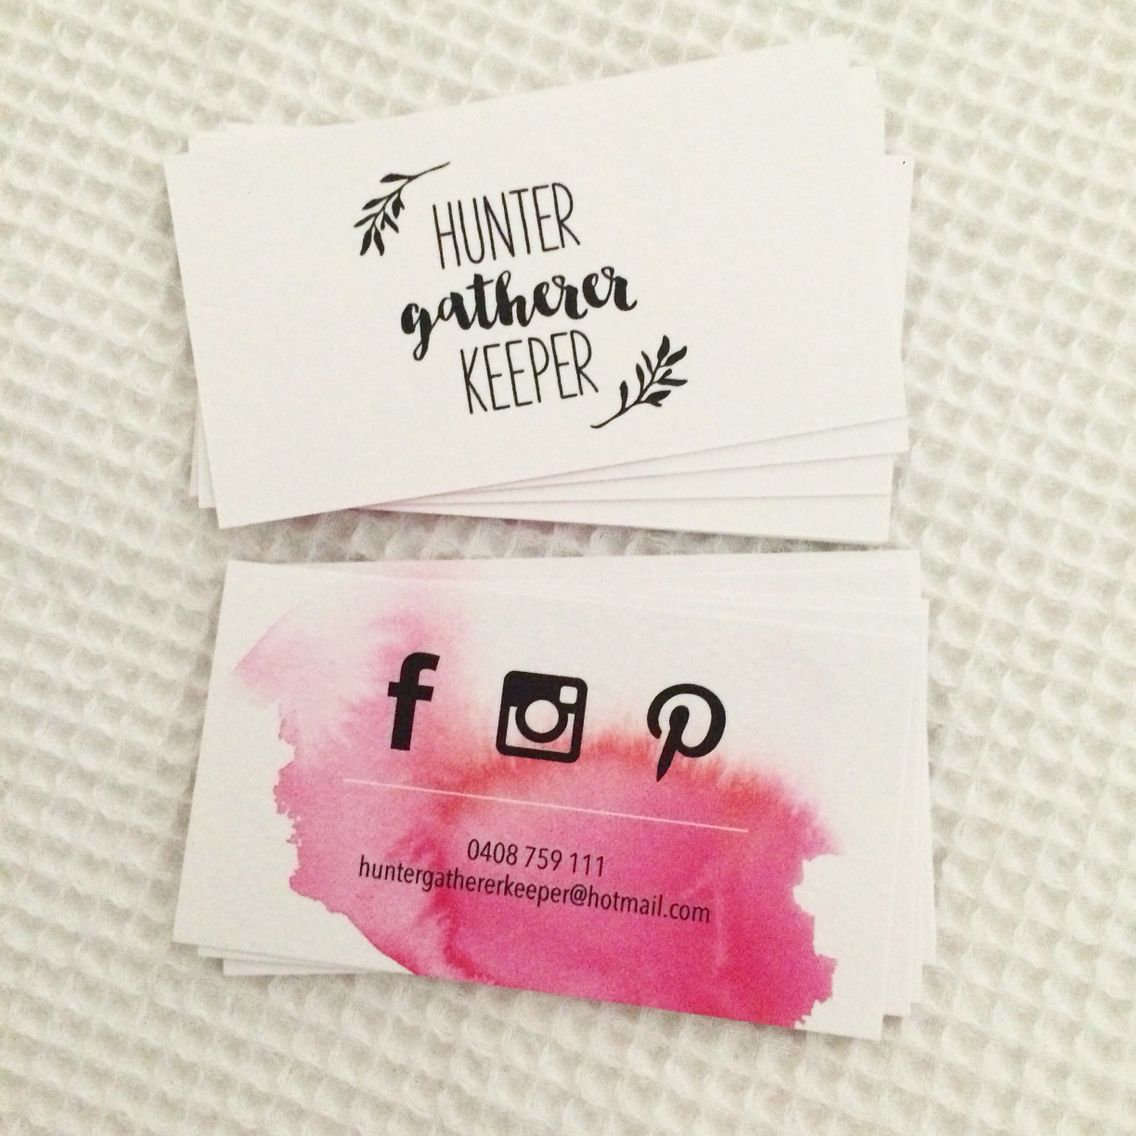 beautiful business cards createdthe very talented kate